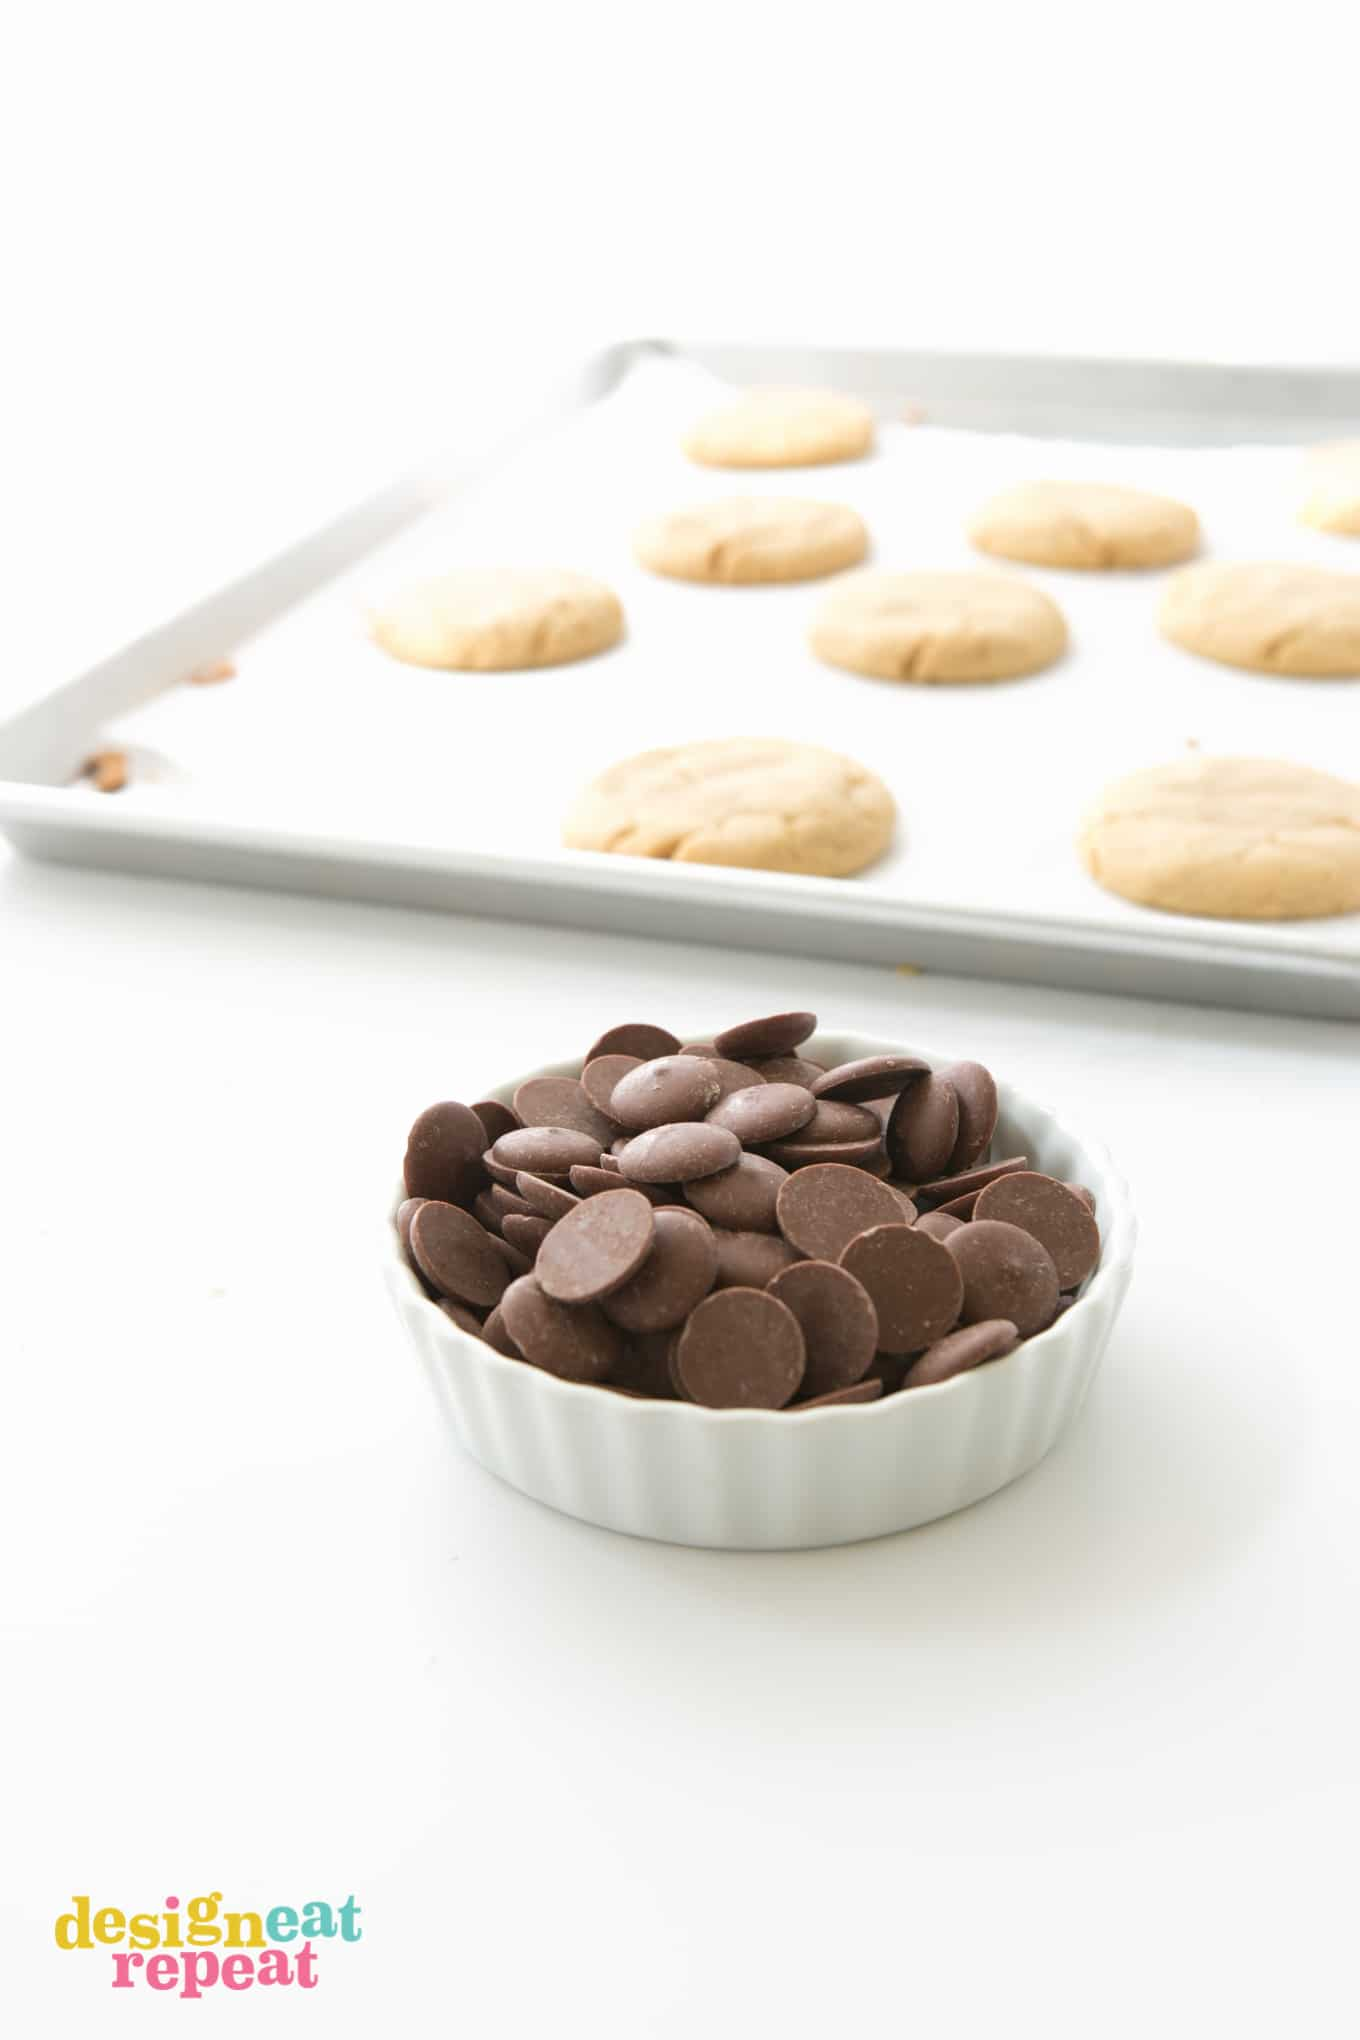 Bowl of dark chocolate melting wafers to use on peanut butter cookies.